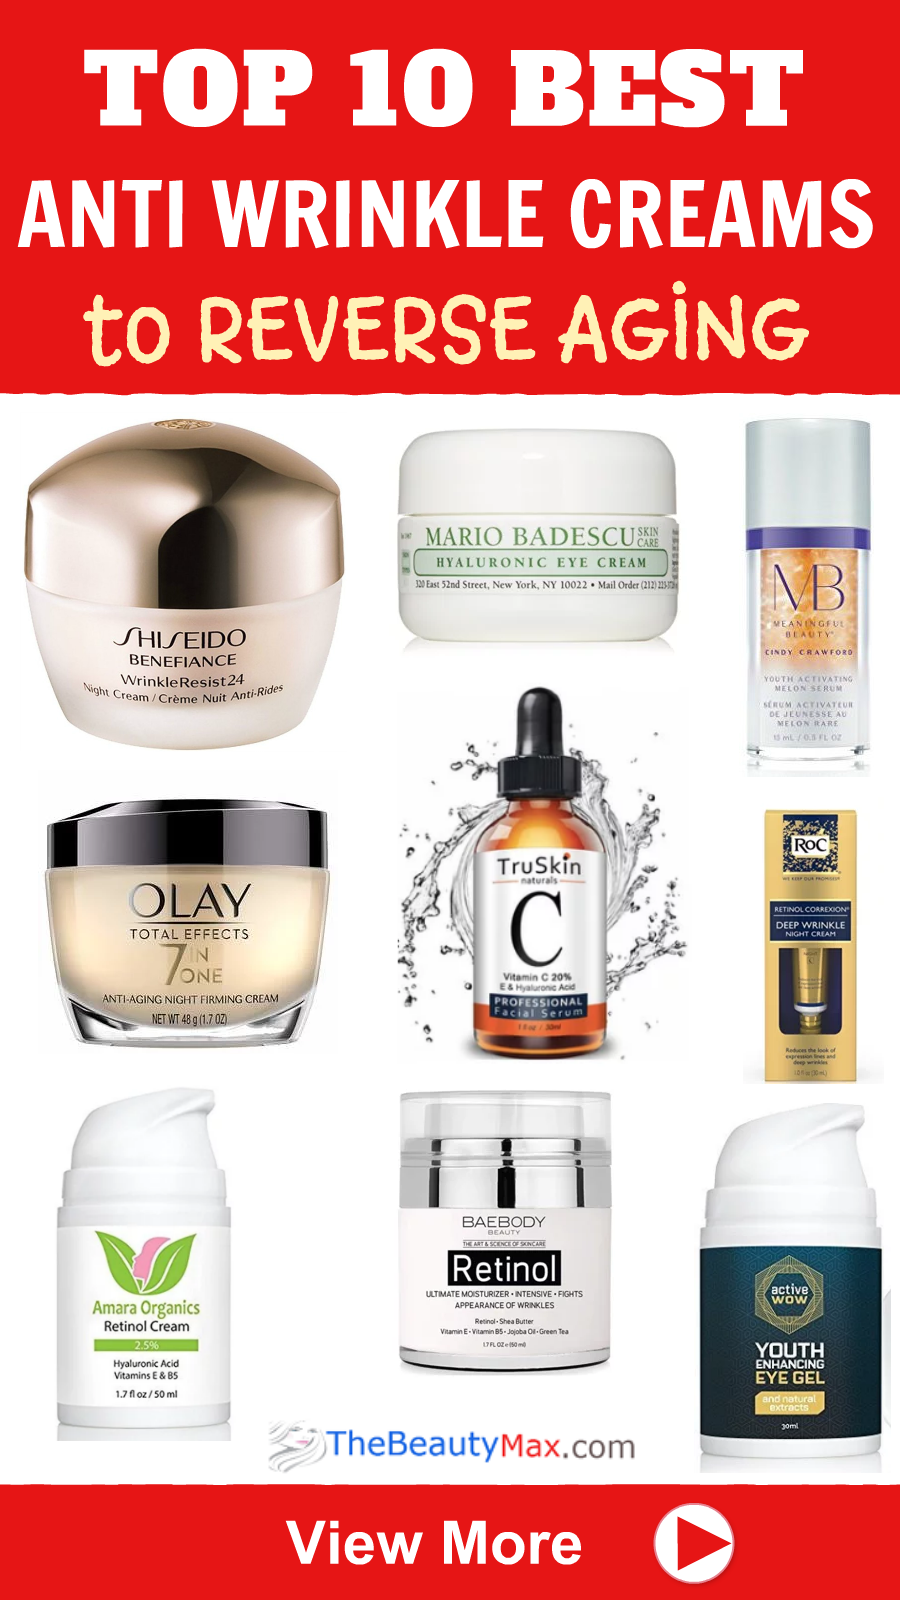 Best Anti Wrinkle Creams Serums You Can Buy At Drugstores Anti Wrinkle Cream Anti Aging Cream Aging Skin Care